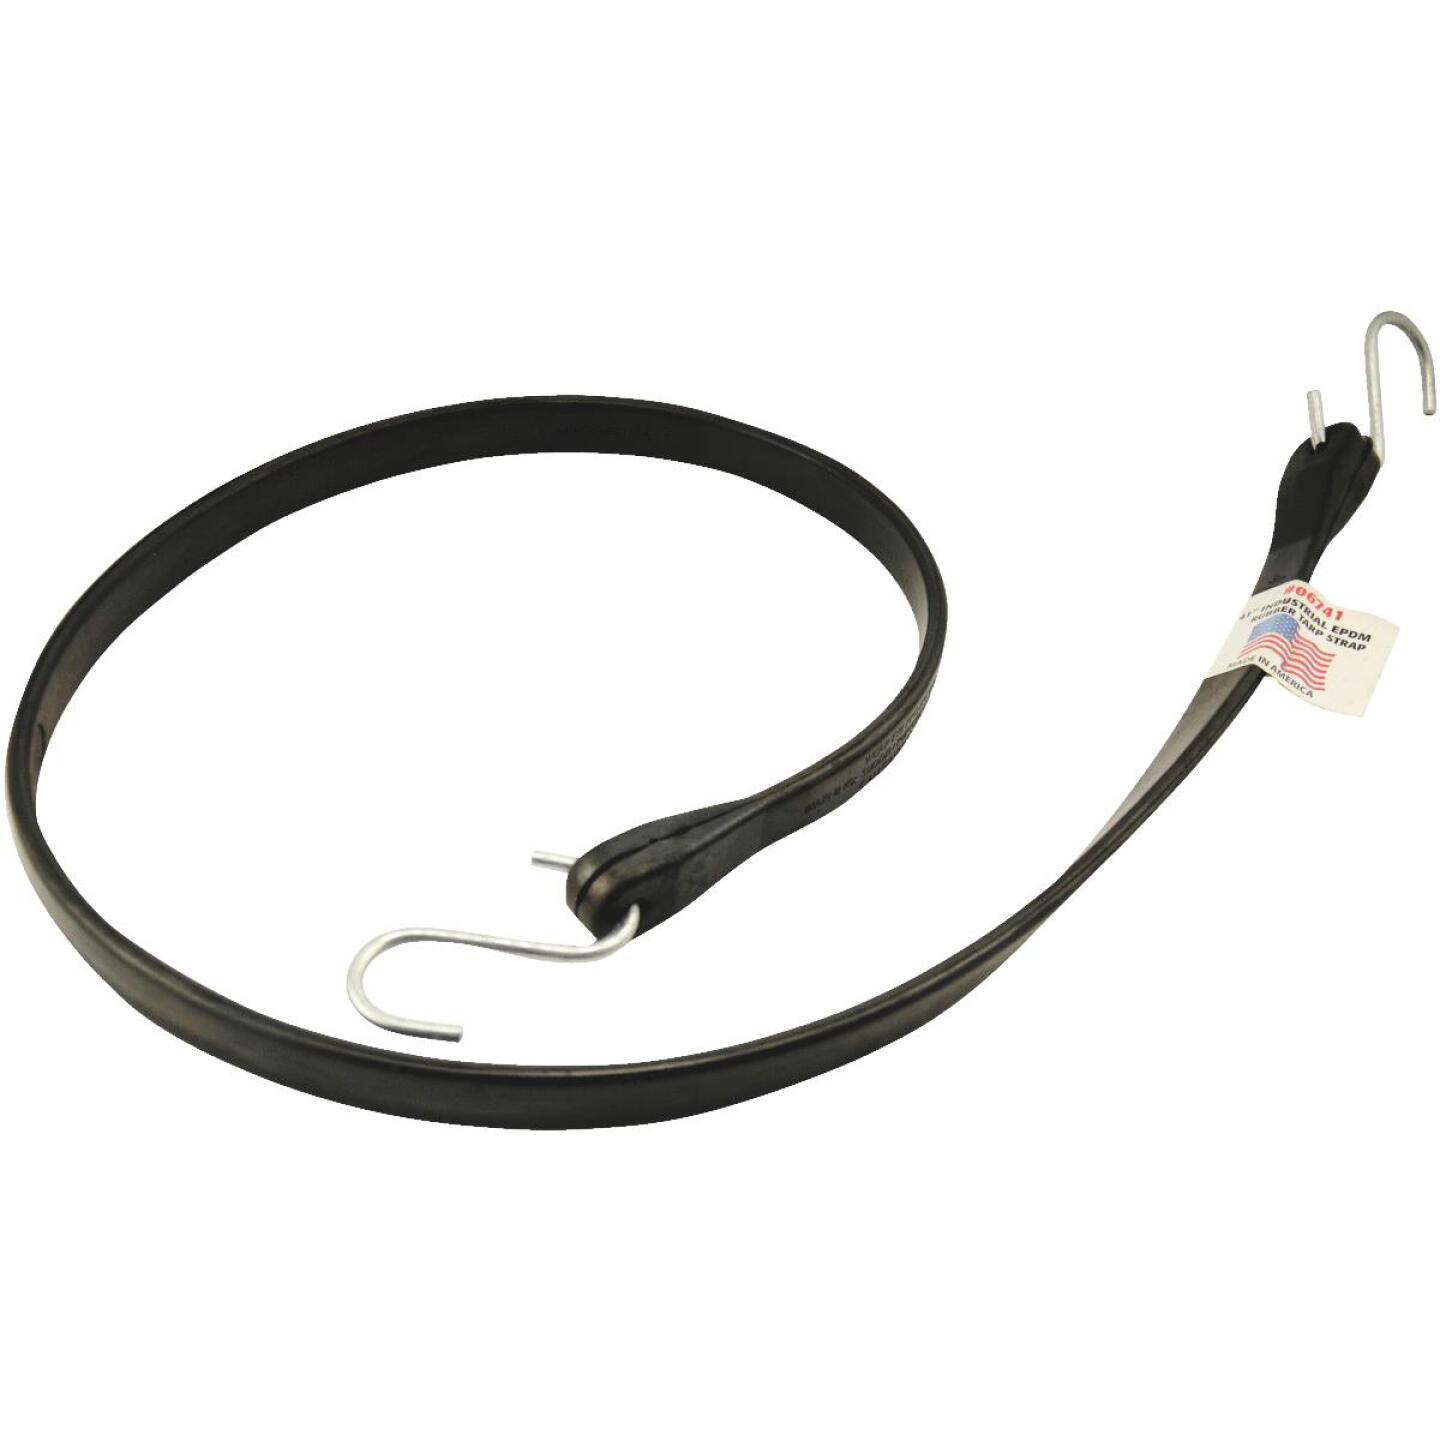 Erickson 44 In. Hook to Hook Black Industrial EDPM Rubber Tarp Strap Image 1